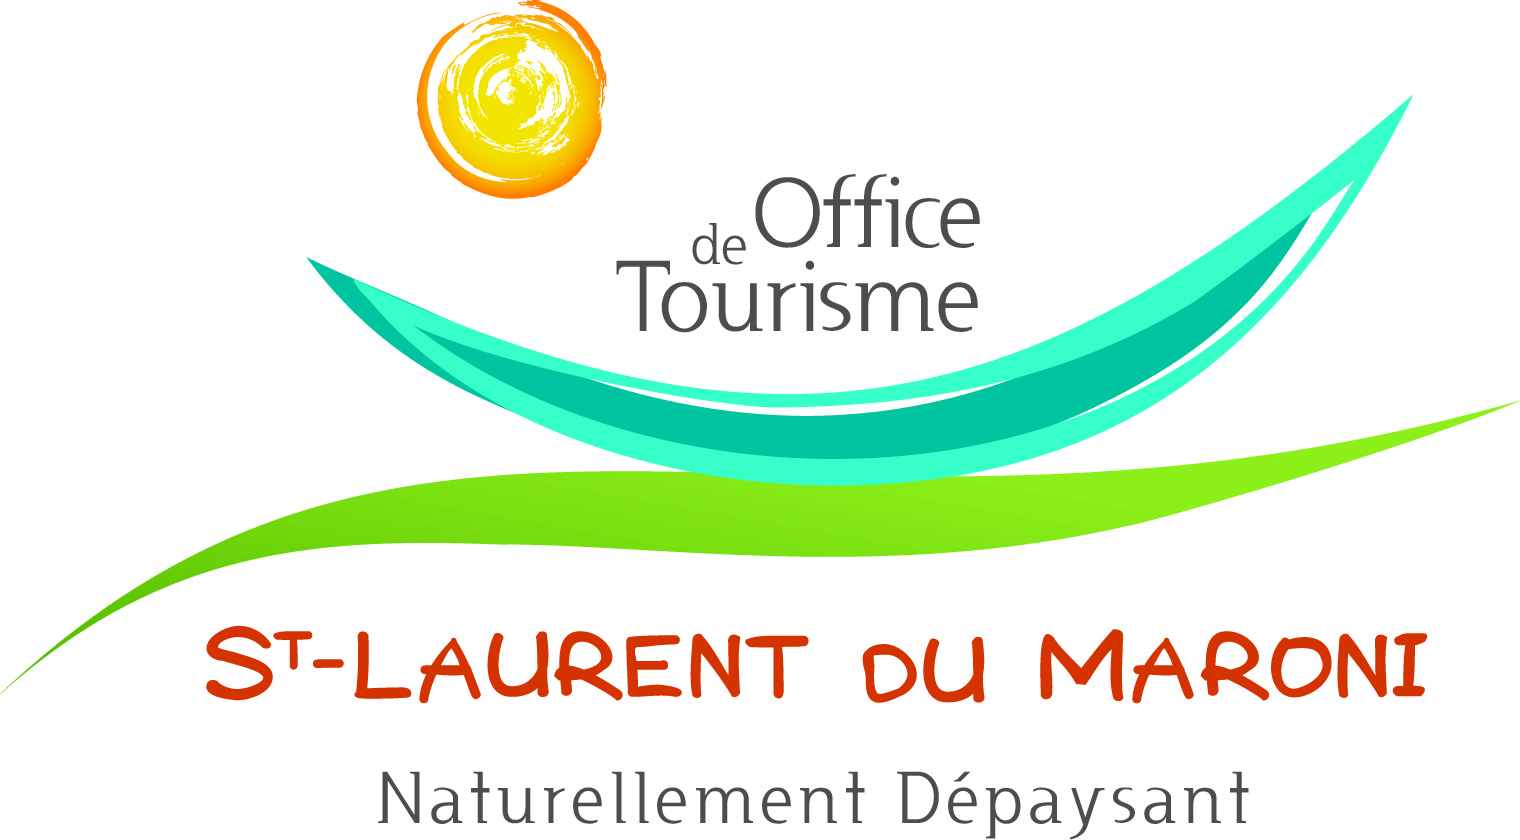 office de tourisme 97320